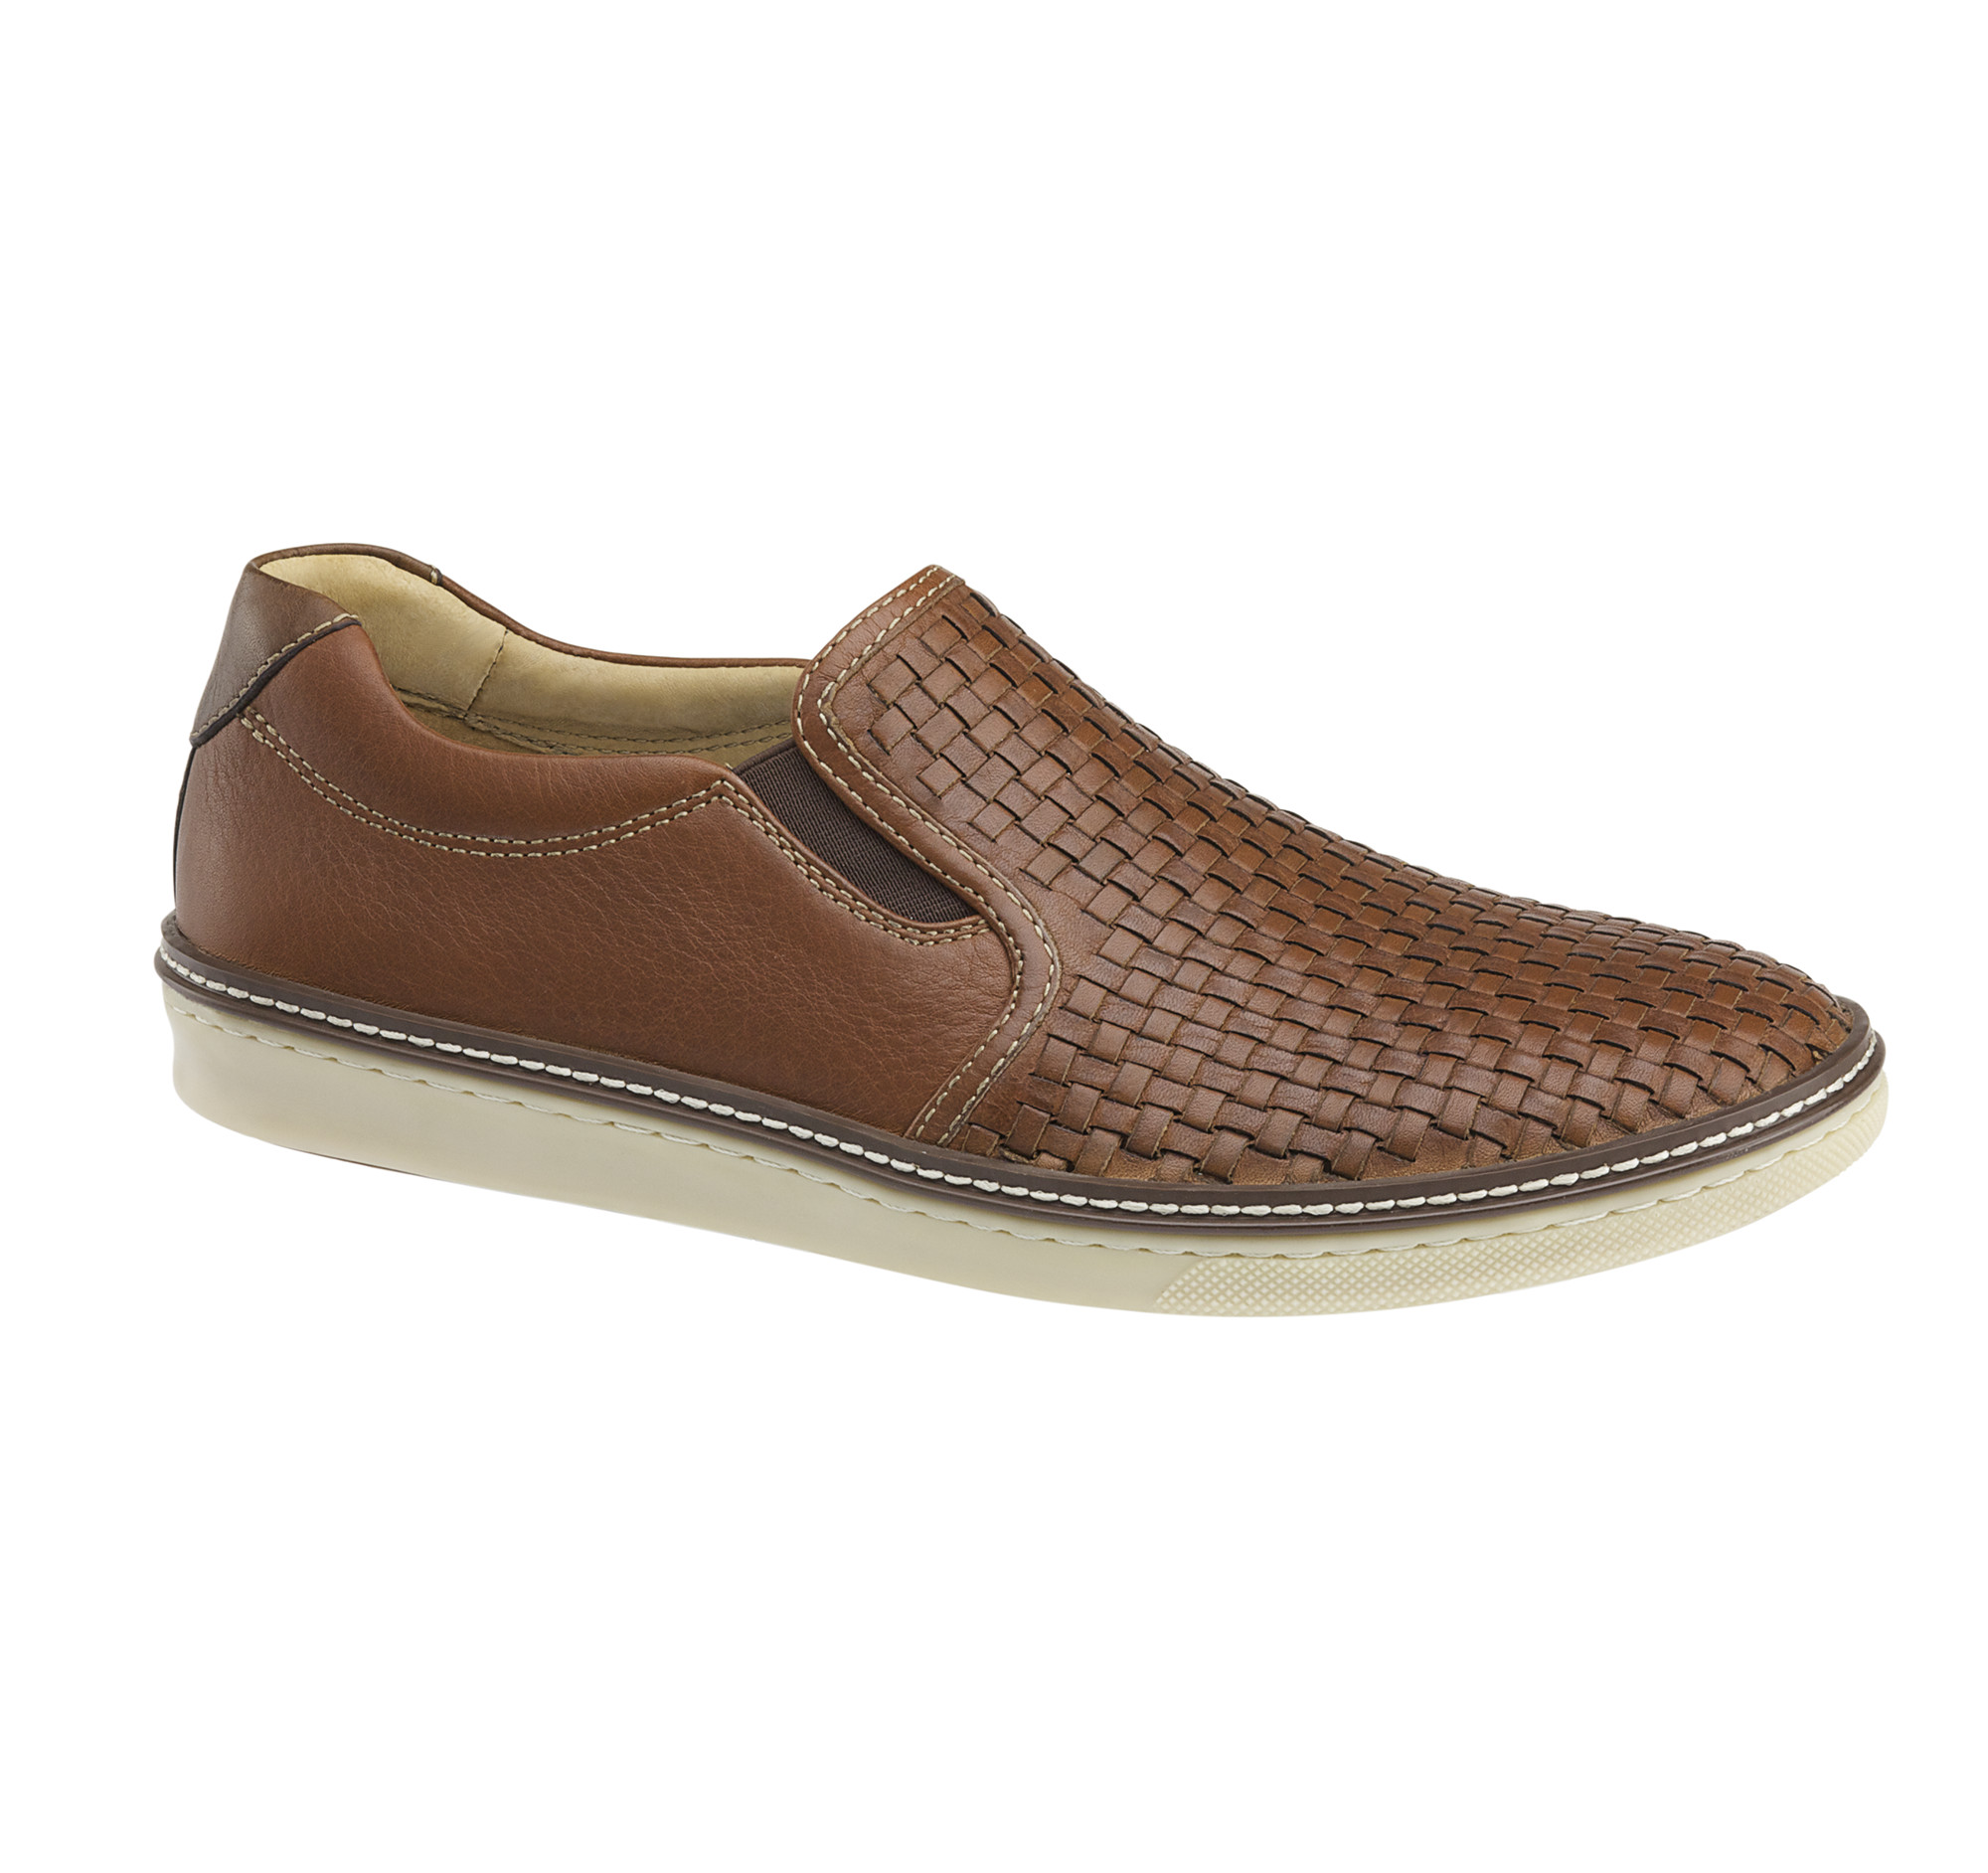 Johnston & Murphy Men's Mcguffey Woven Slip-On Sneaker IvXcg